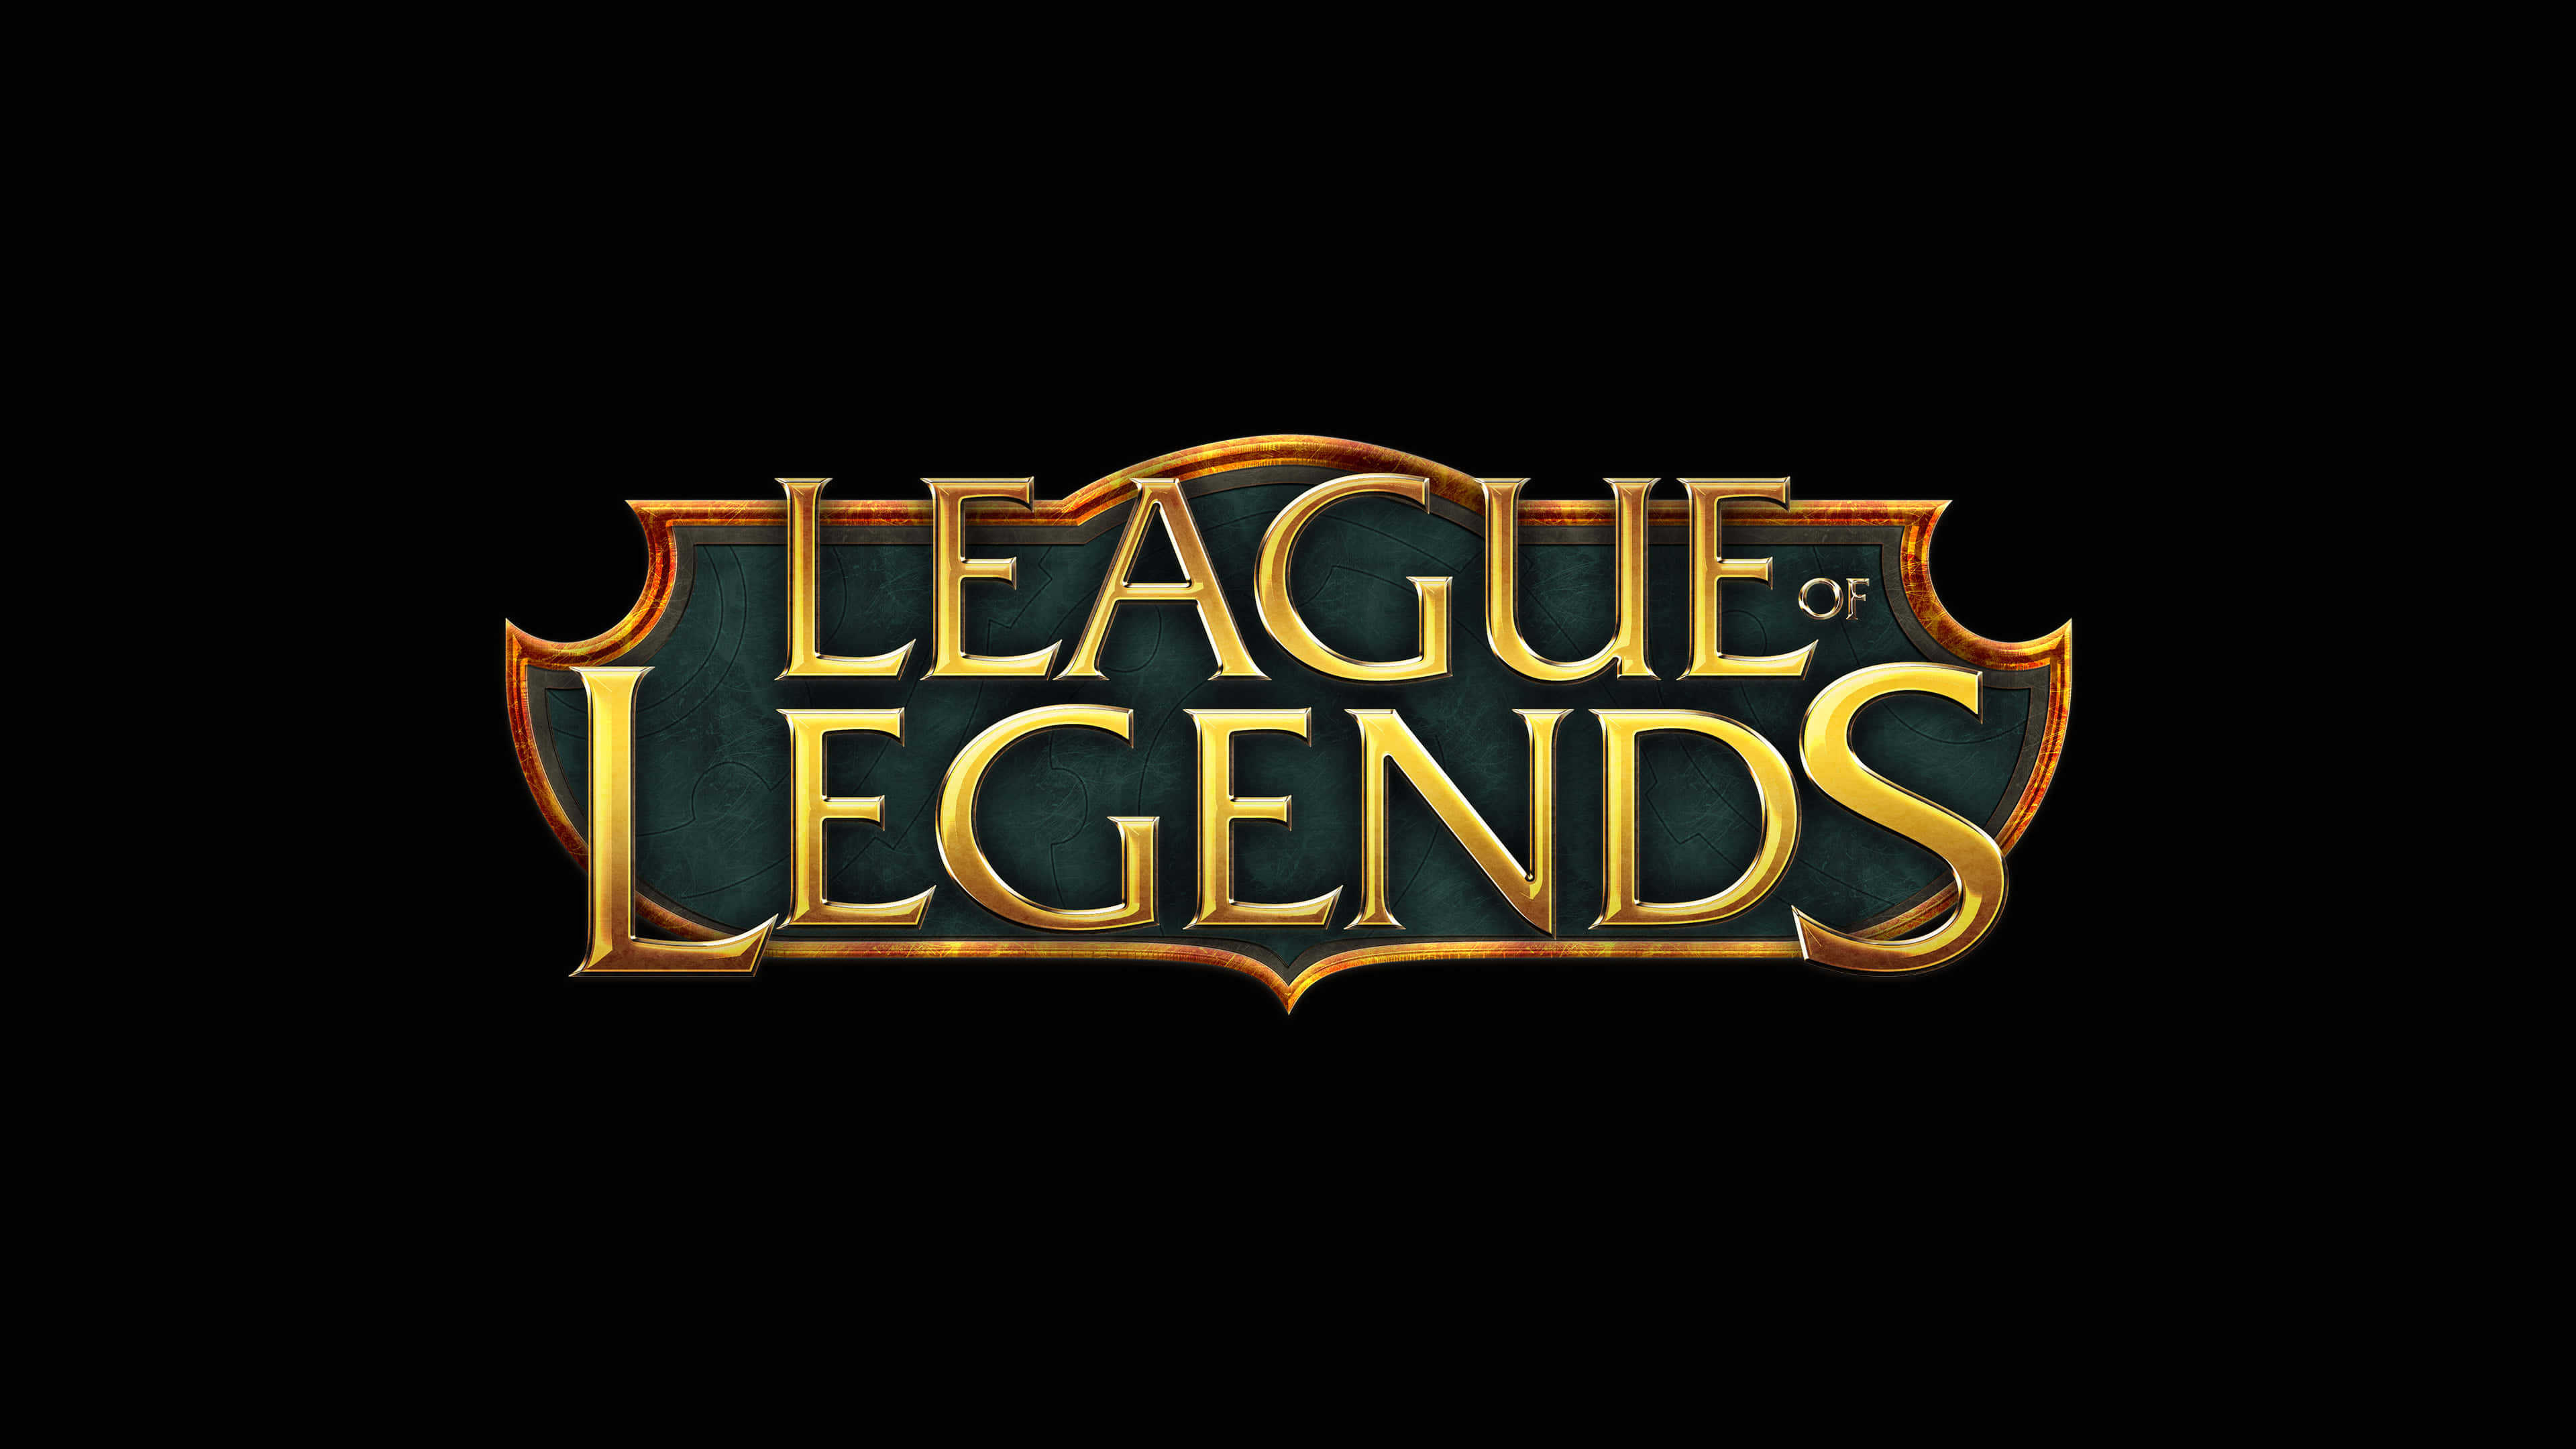 League Of Legends Logo Uhd 4k Wallpaper Pixelz